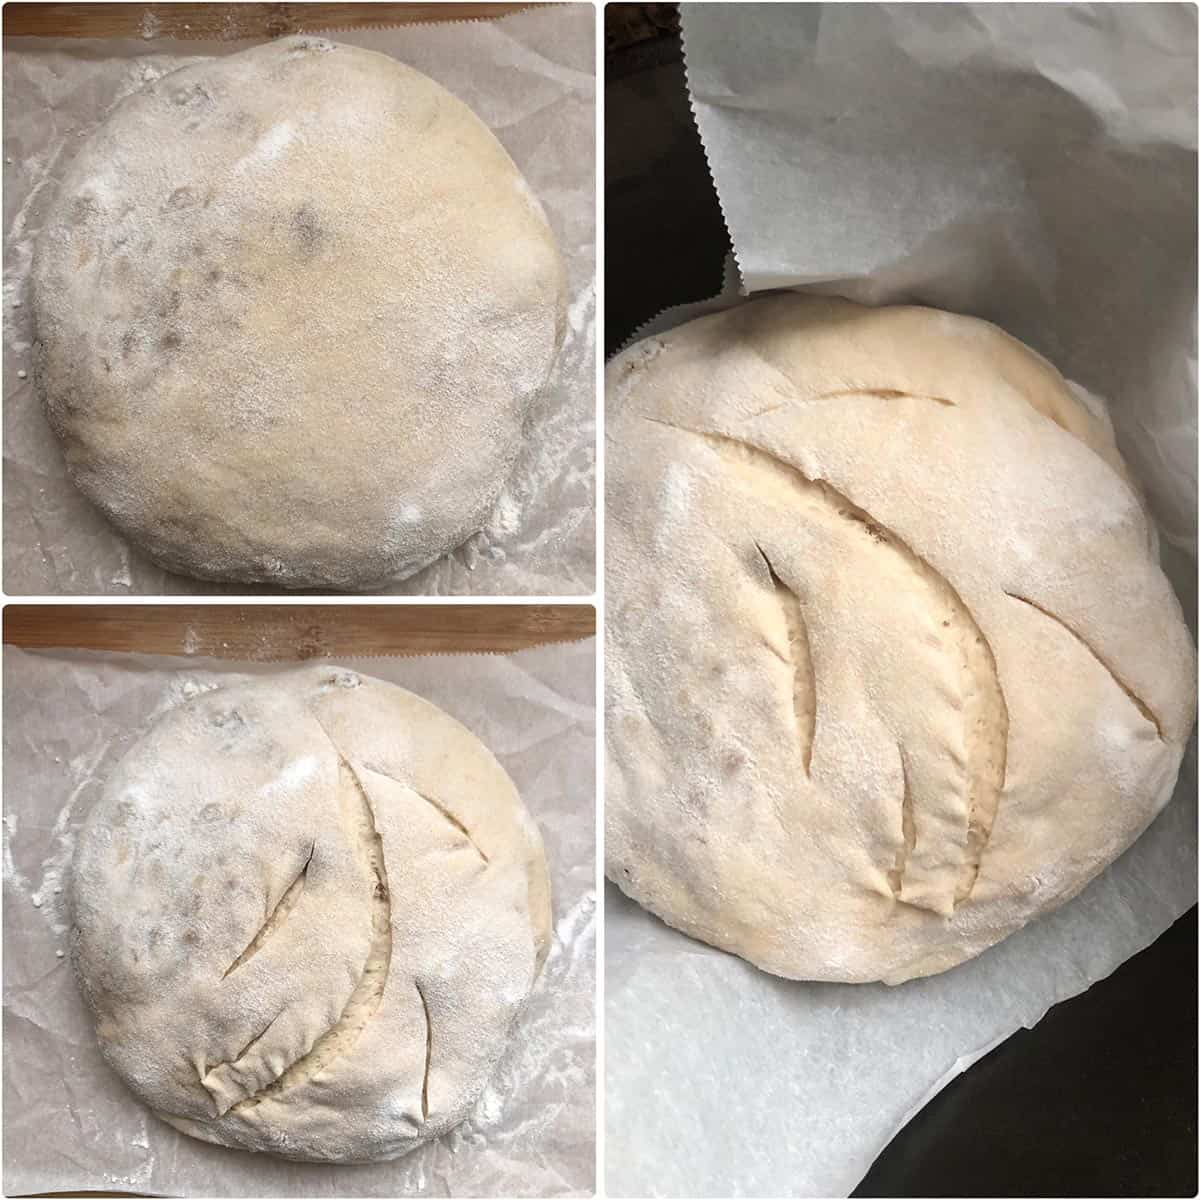 Slicing the bread before baking